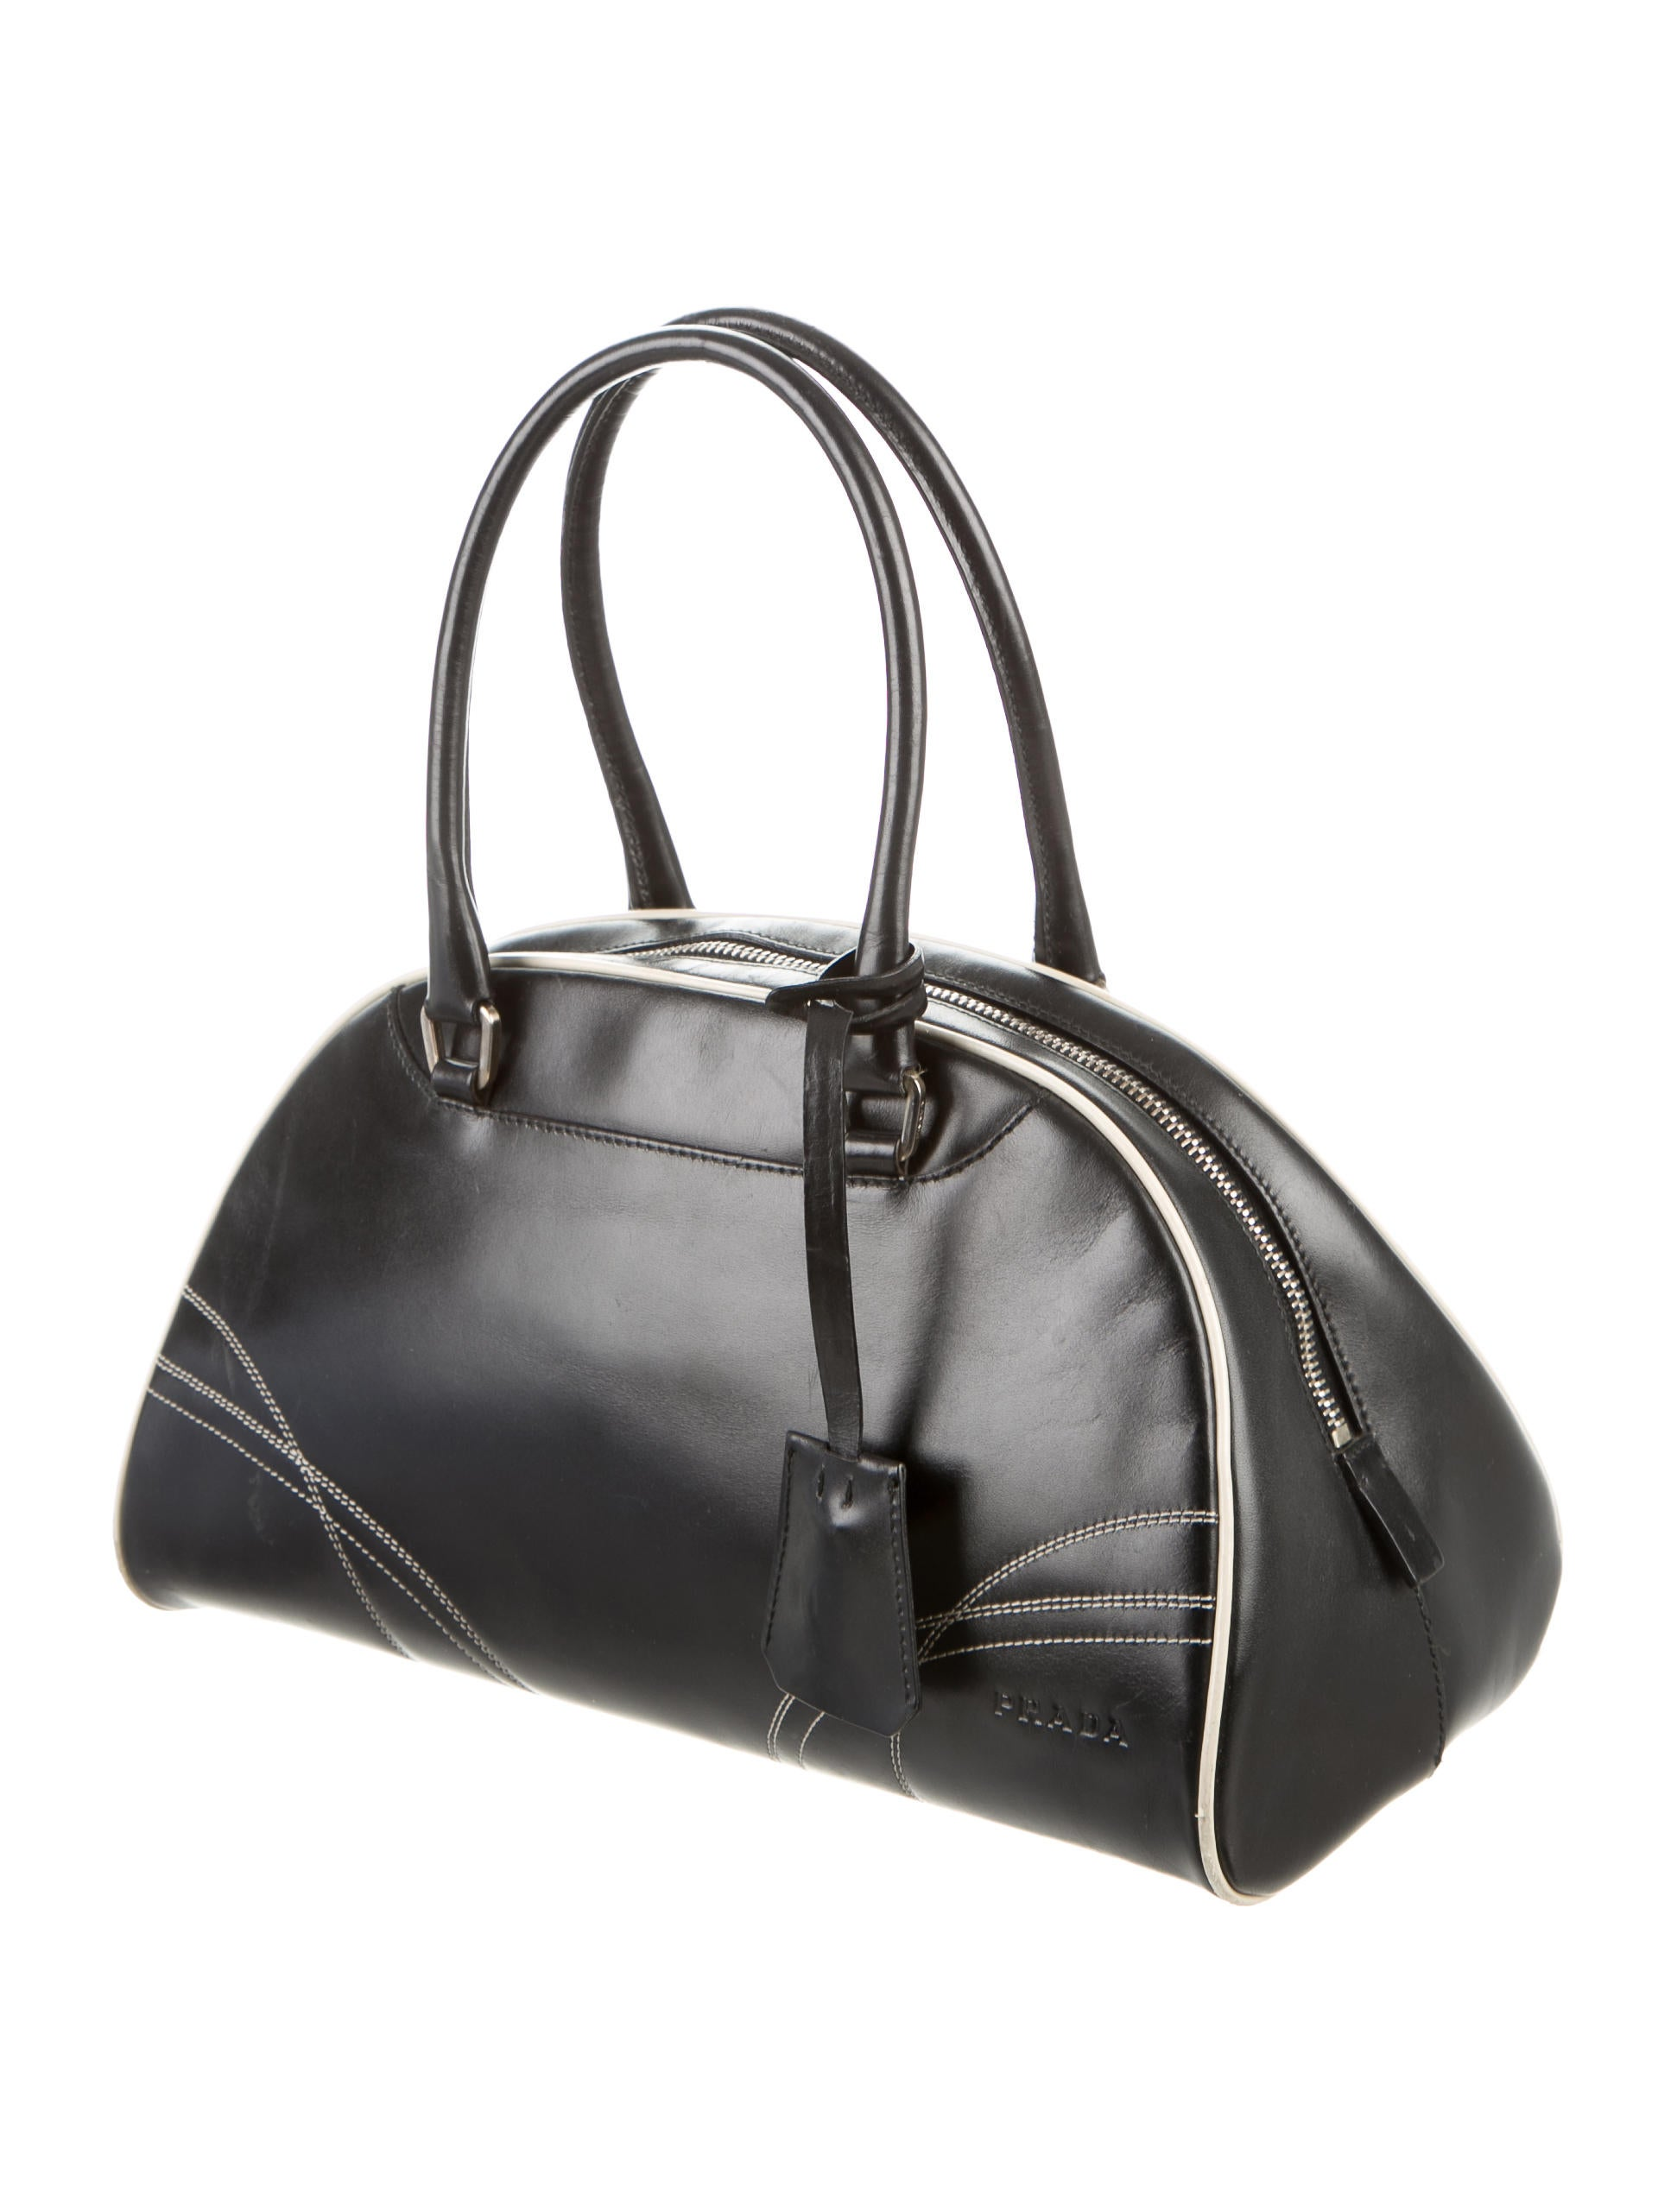 Purchase your next Bowler bag from Zazzle. Check out our backpacks, clutches, & more or create your own!